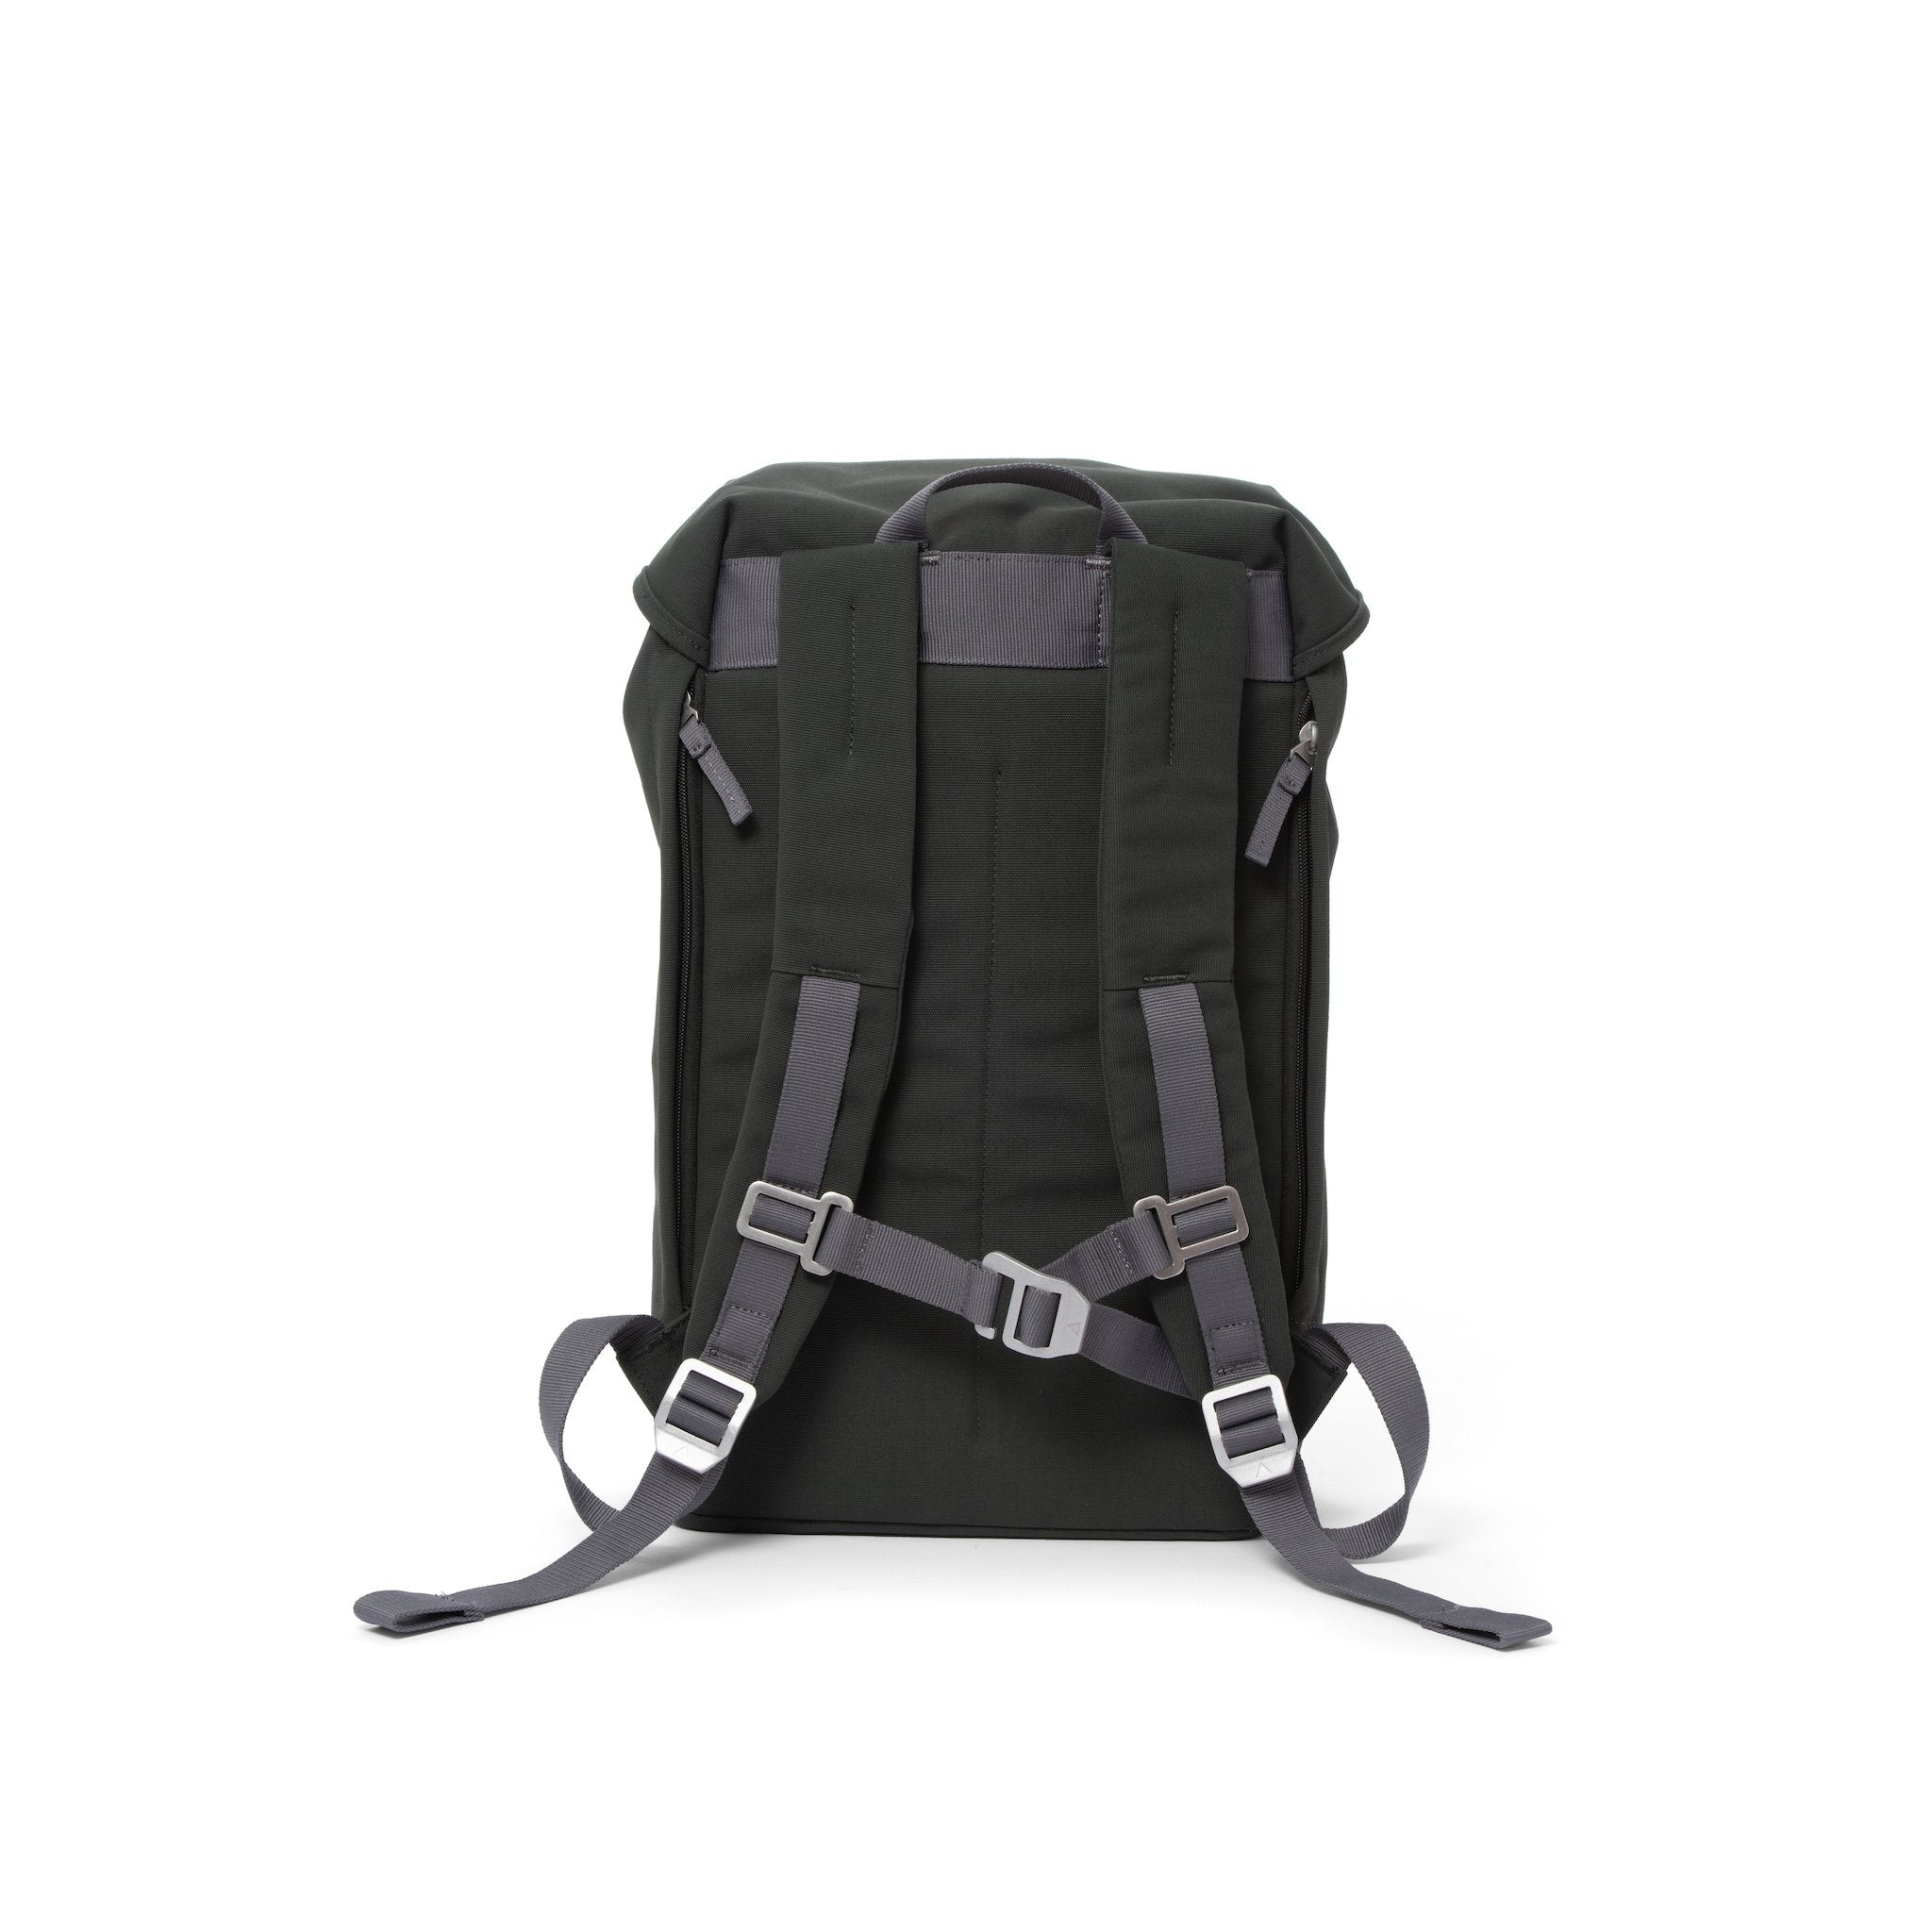 Grey waterproof backpack with padded shoulder straps and chest strap.